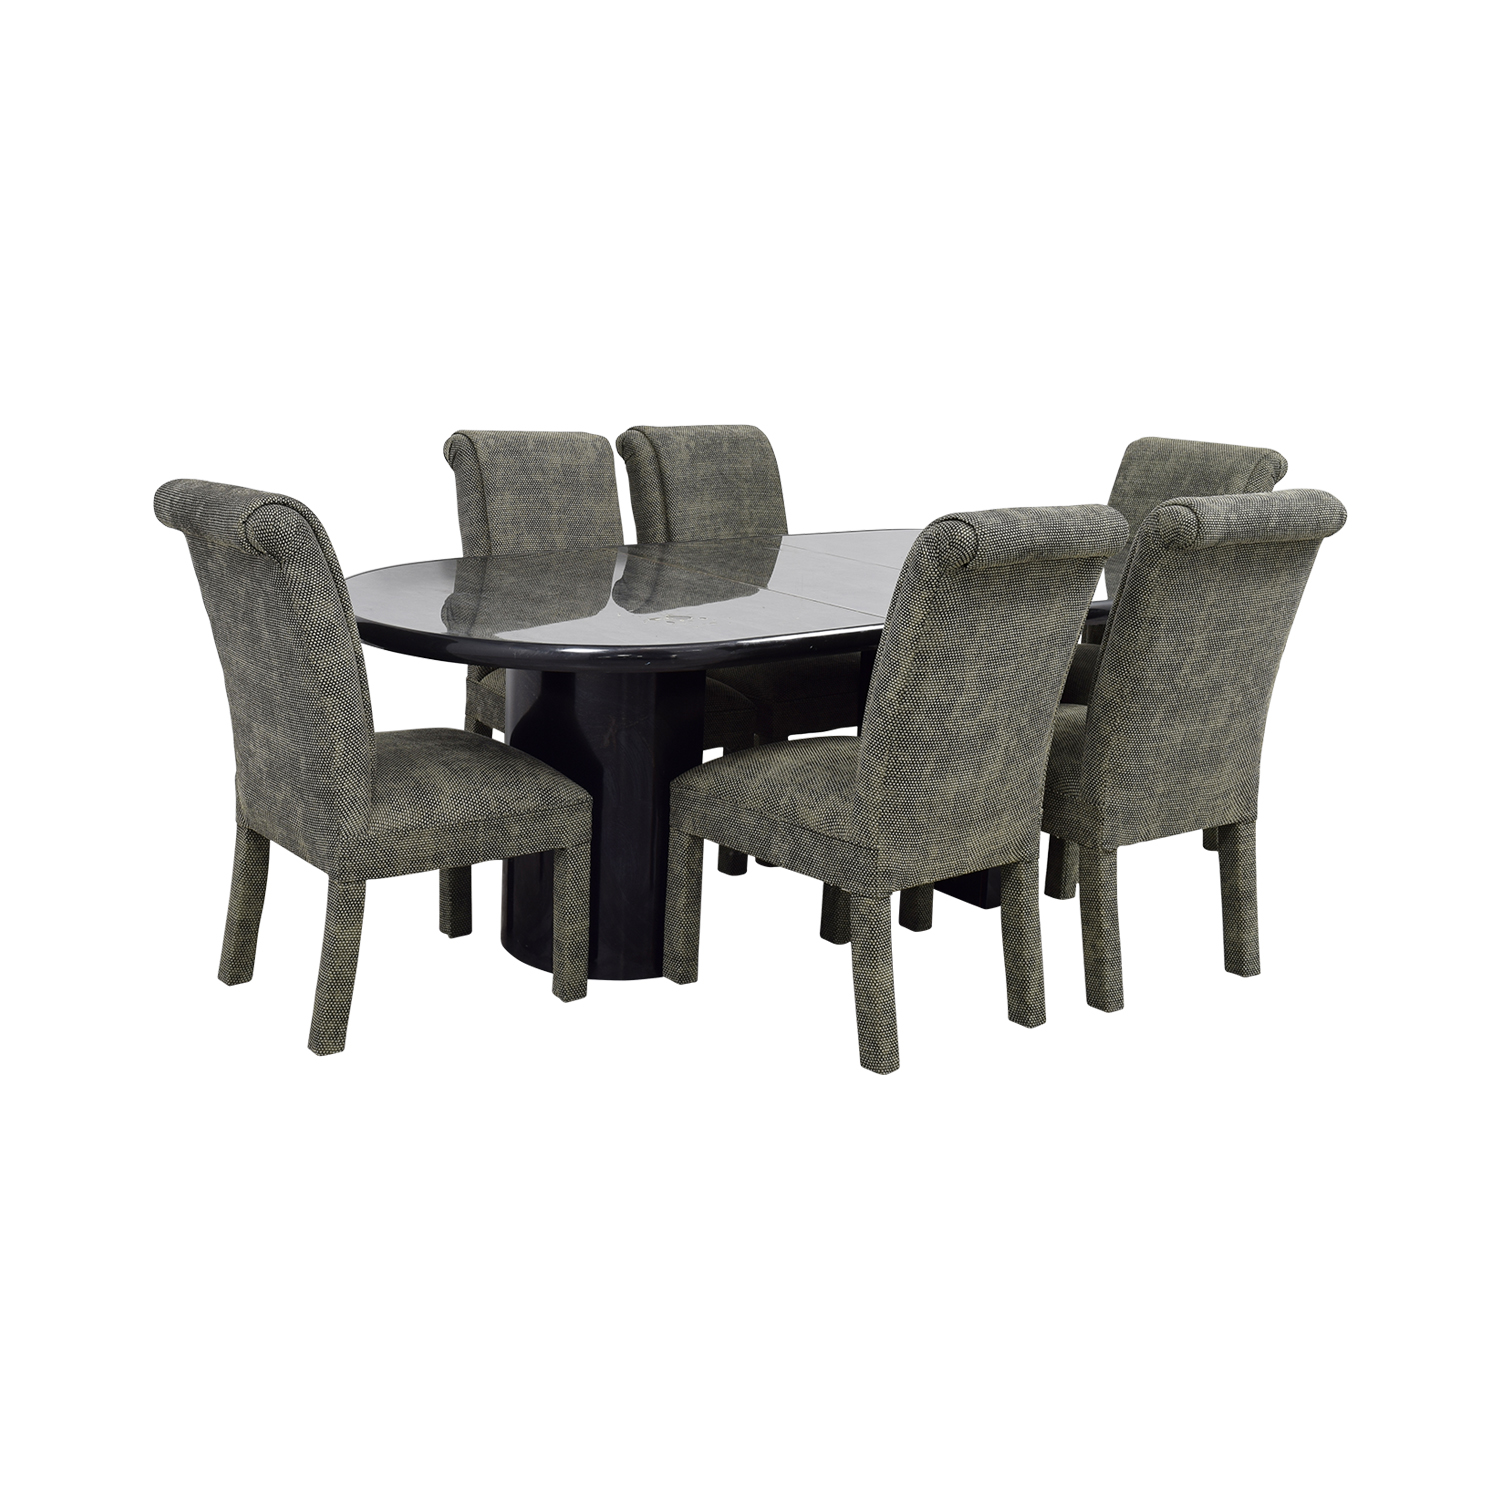 90 Off Charcoal Dining Set With Upholstered Chairs Tables